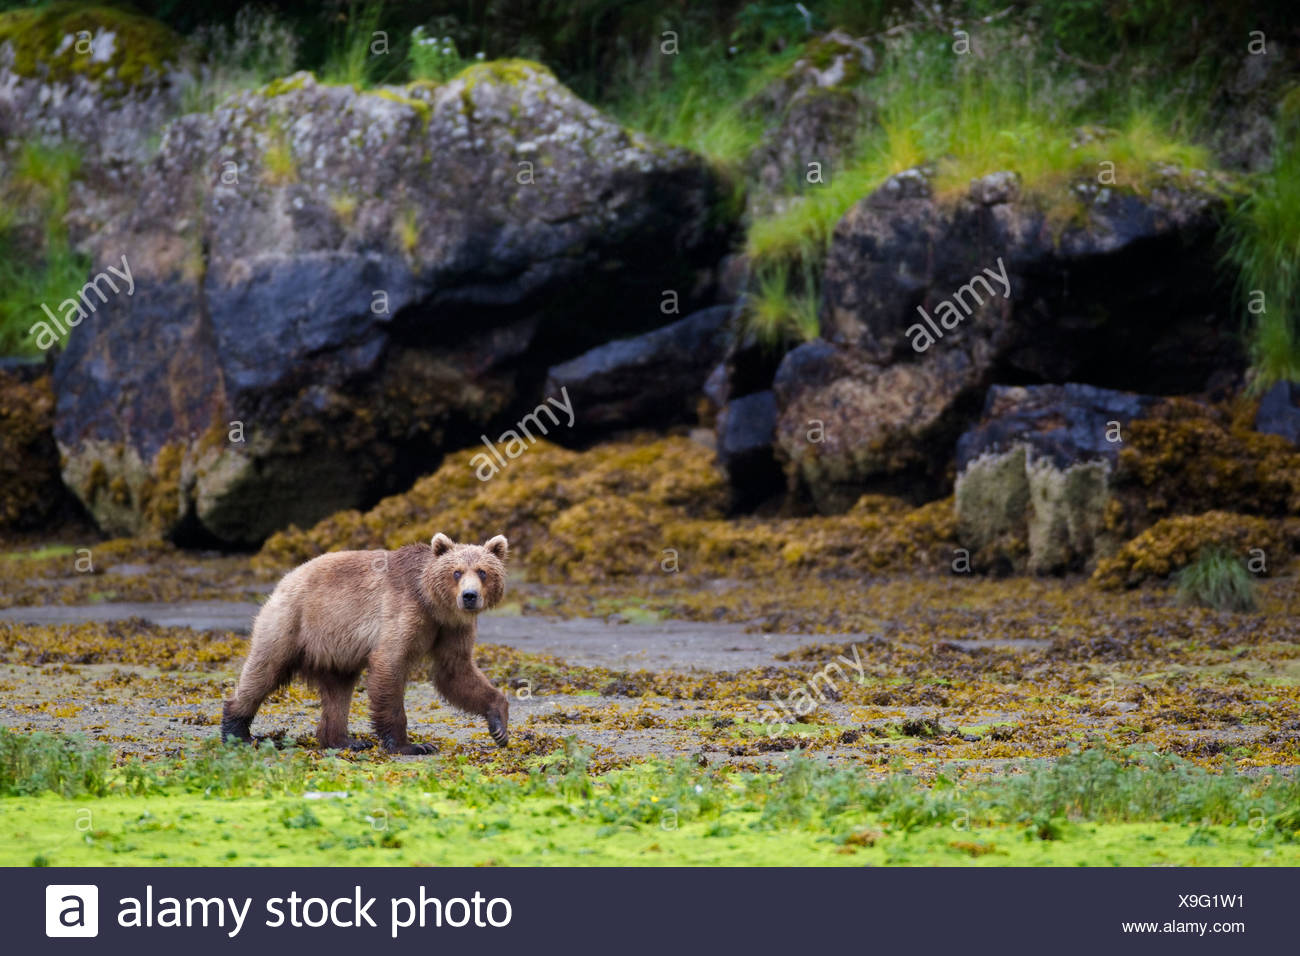 Brown bear walking on tidal flat at low tide with large boulders in background, Prince William Sound, Southcentral Alaska - Stock Image